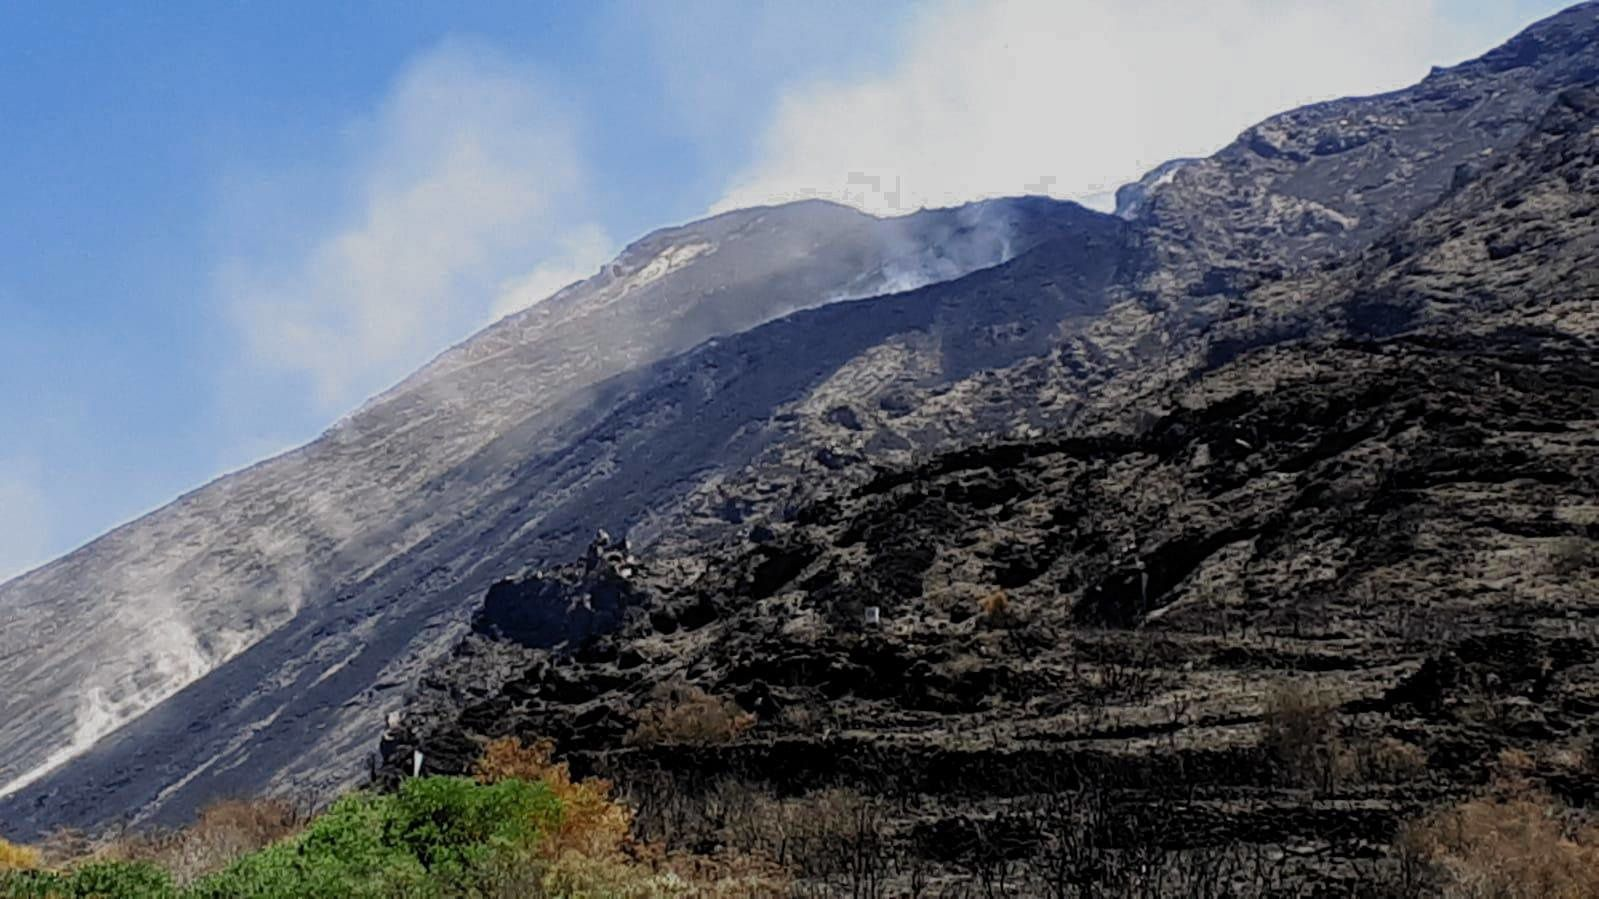 Stromboli - lava flow in the upper part of the Sciara and rock falls - photo F. Murè / 11.07.2019 at 15:30